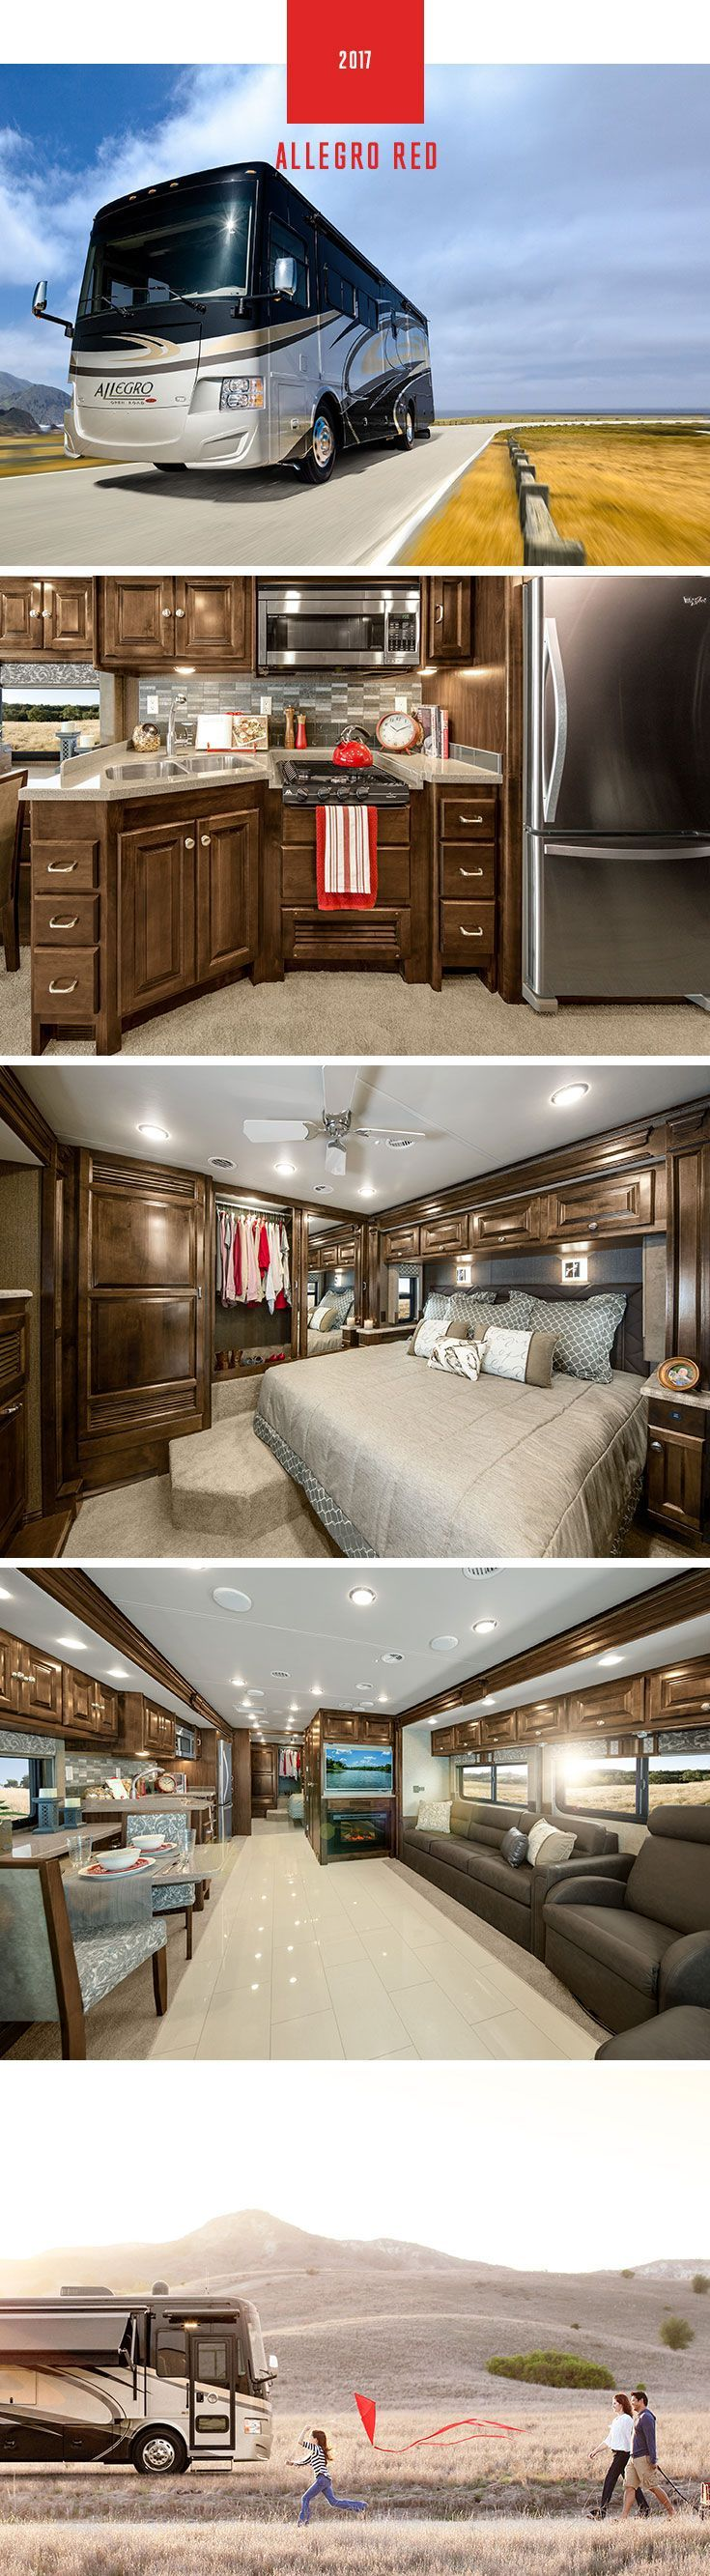 30 Amazing Luxury RV  Gallery that Never You Seen Before https://decomg.com/30-amazing-luxury-rv-gallery/